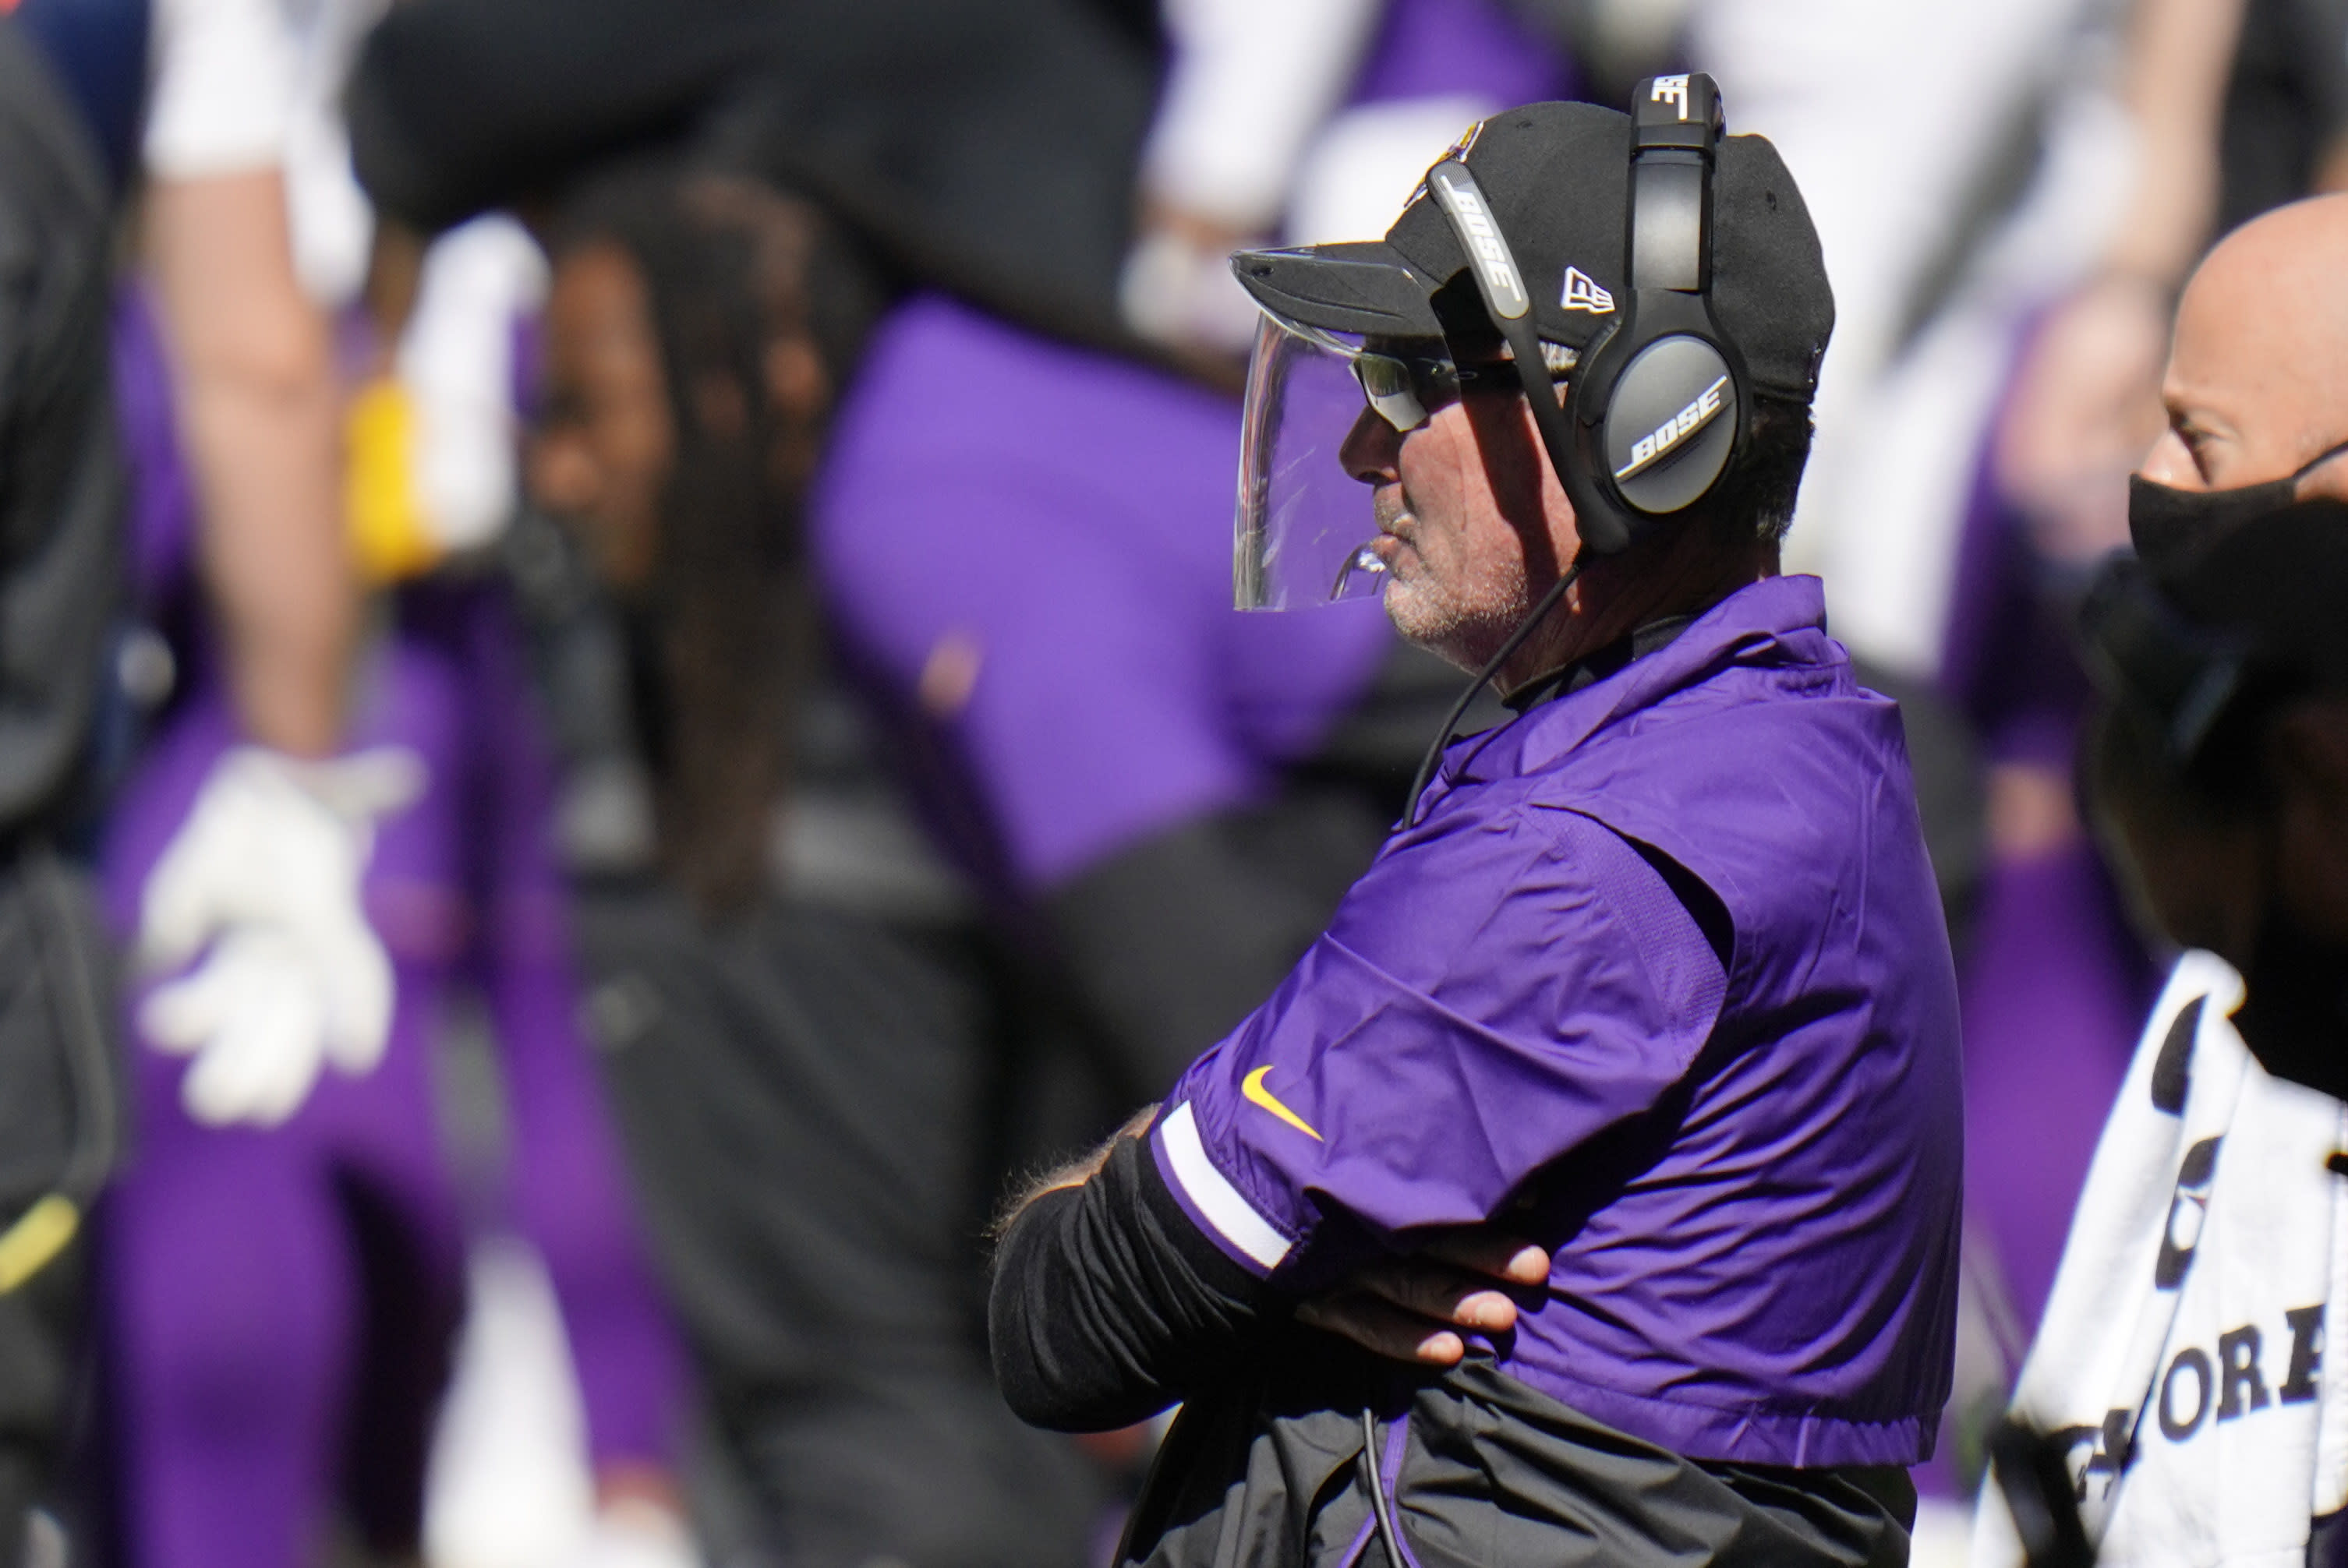 Minnesota Vikings head coach Mike Zimmer watches during the second half of an NFL football game against the Indianapolis Colts, Sunday, Sept. 20, 2020, in Indianapolis. (AP Photo/AJ Mast)